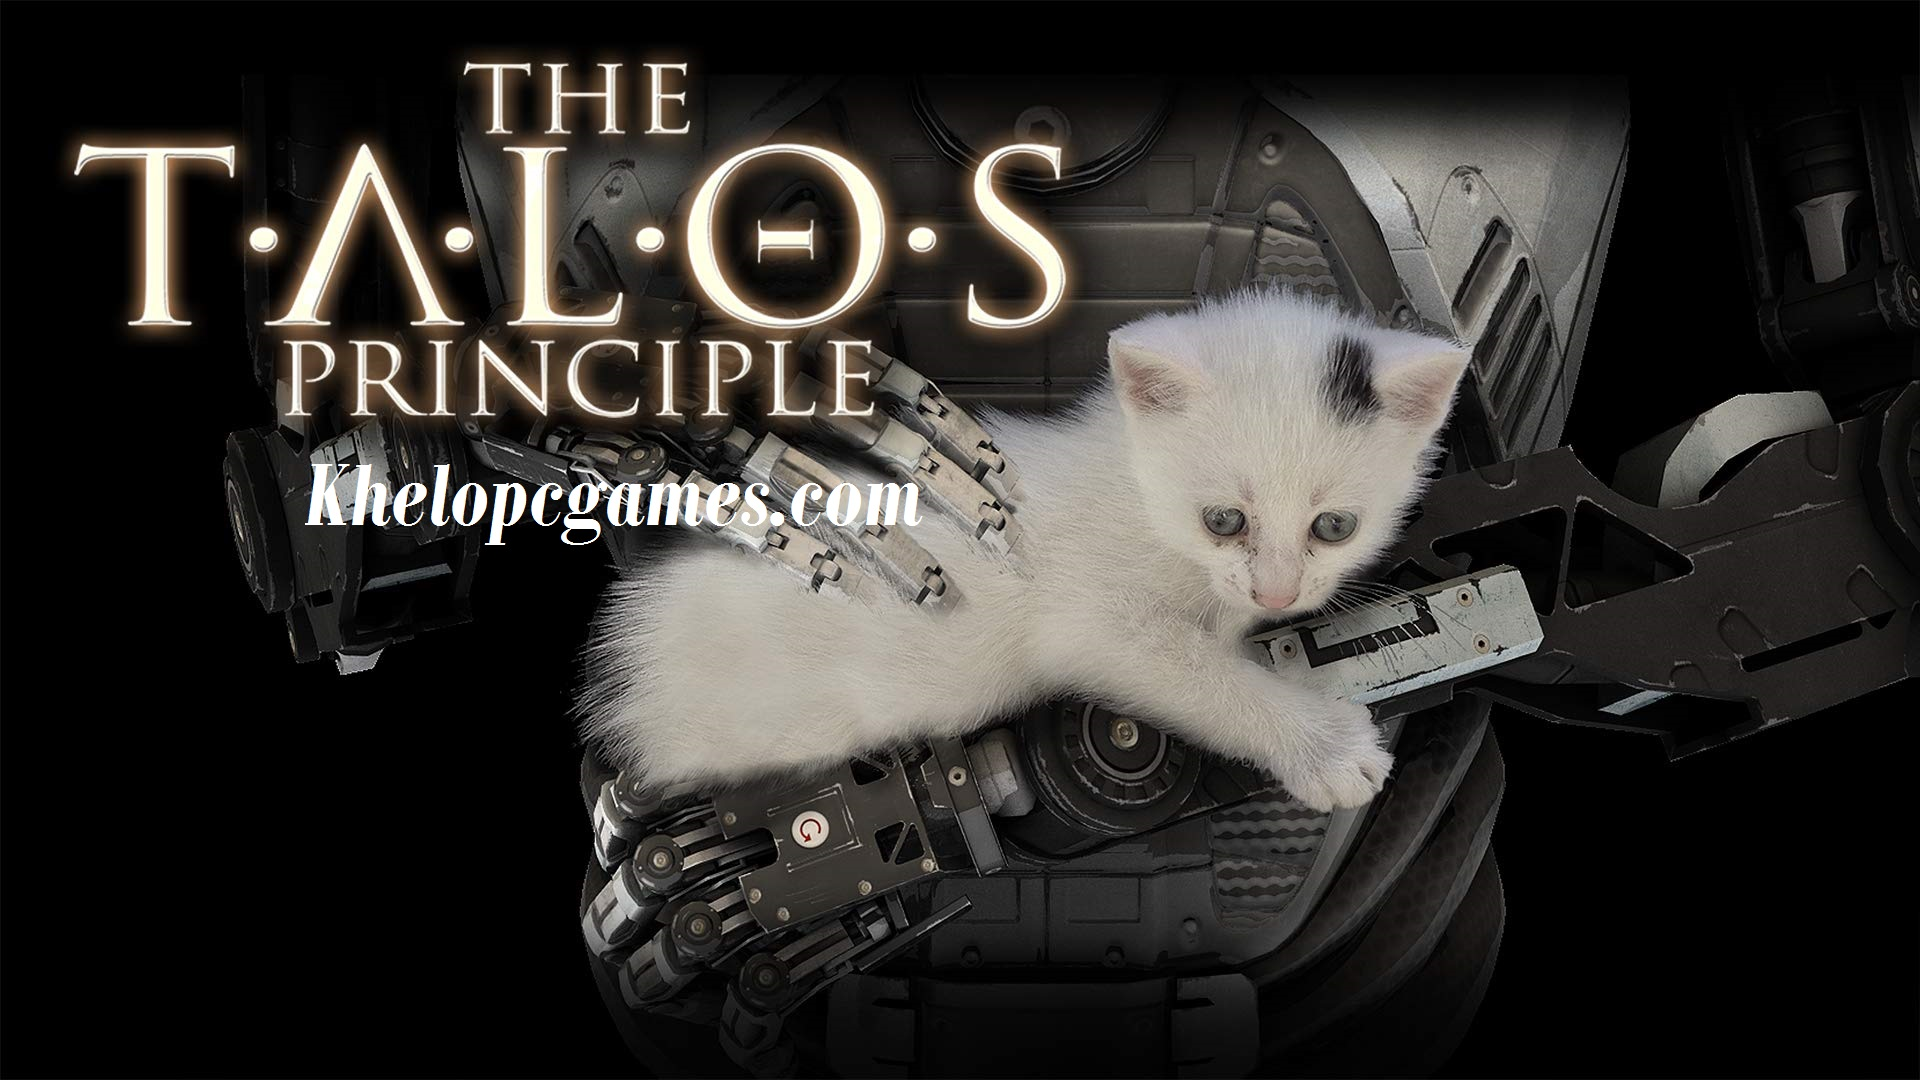 The Talos Principle Free Download Ful Version PC Games Setup (Inclu ALL DLC)